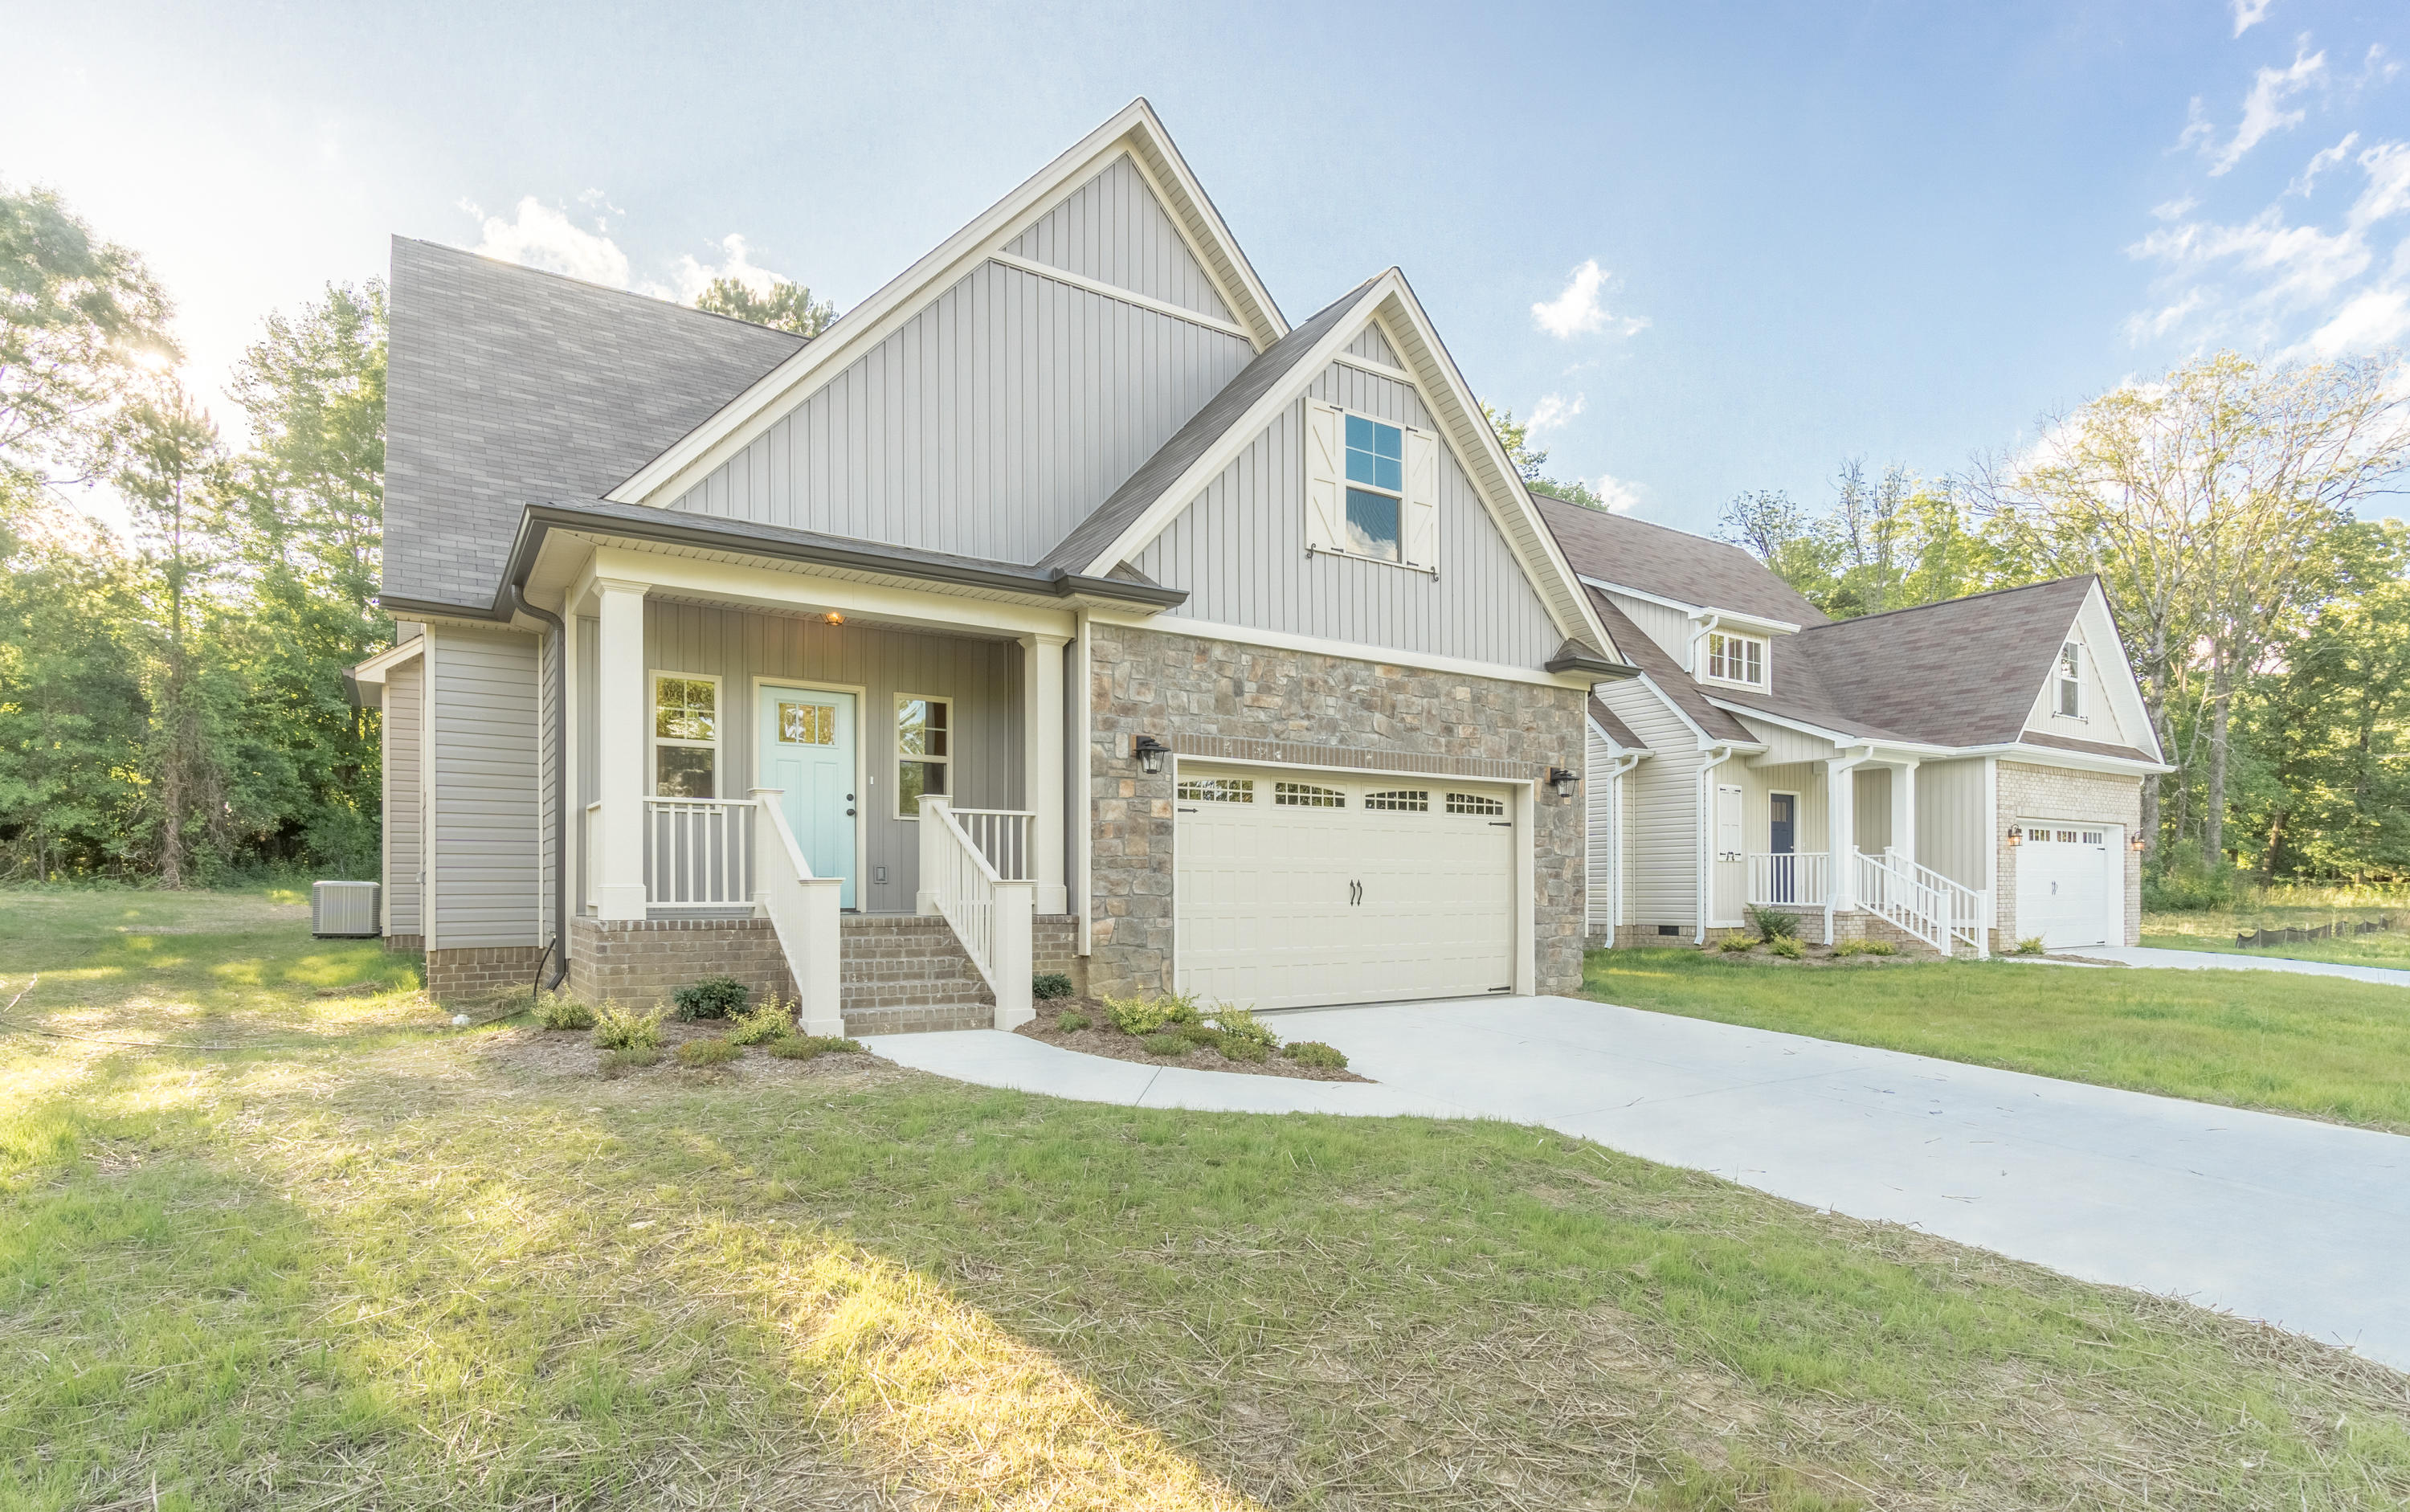 1865  Oakvale Lot 6 Dr 37421 - One of Chattanooga Homes for Sale